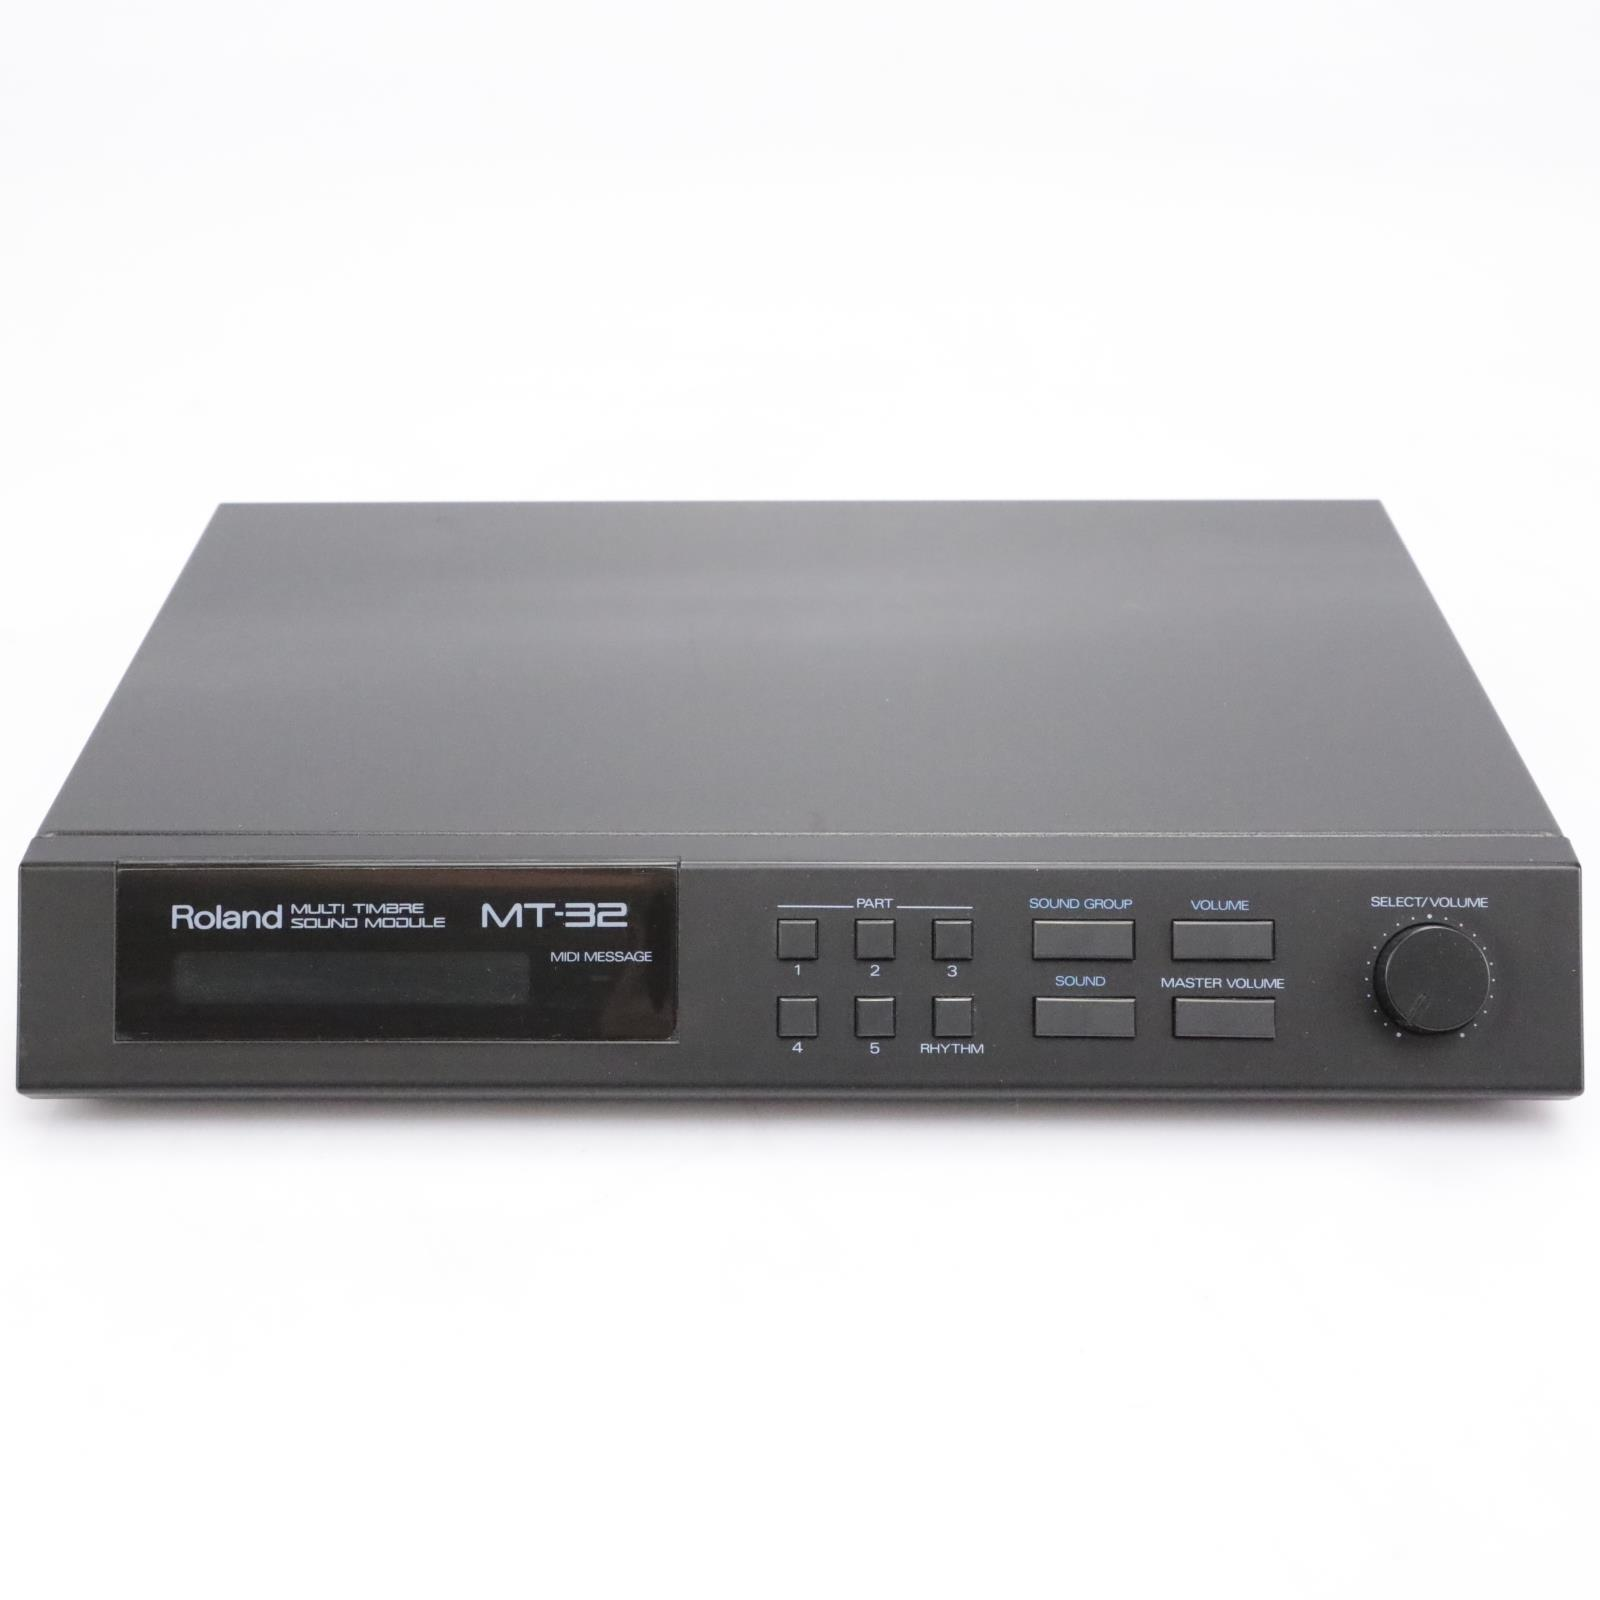 Roland MT-32 Multi Timbre Sound Module Synthesizer #43467